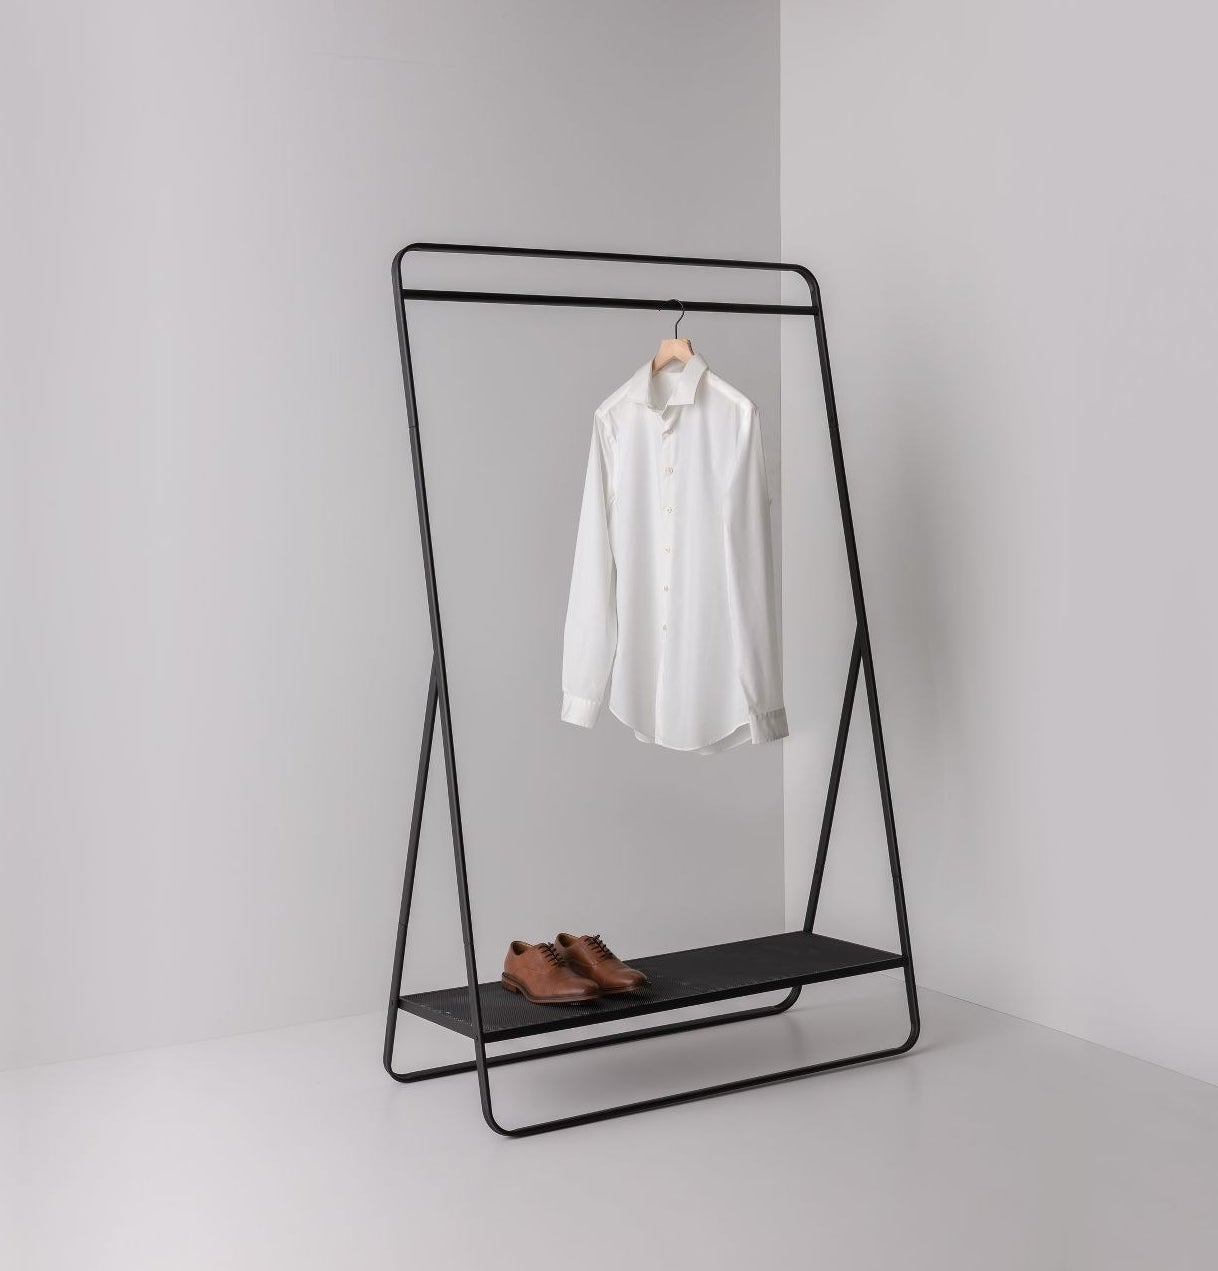 metal garment rack with a shirt hanging and shoes on the bottom shelf